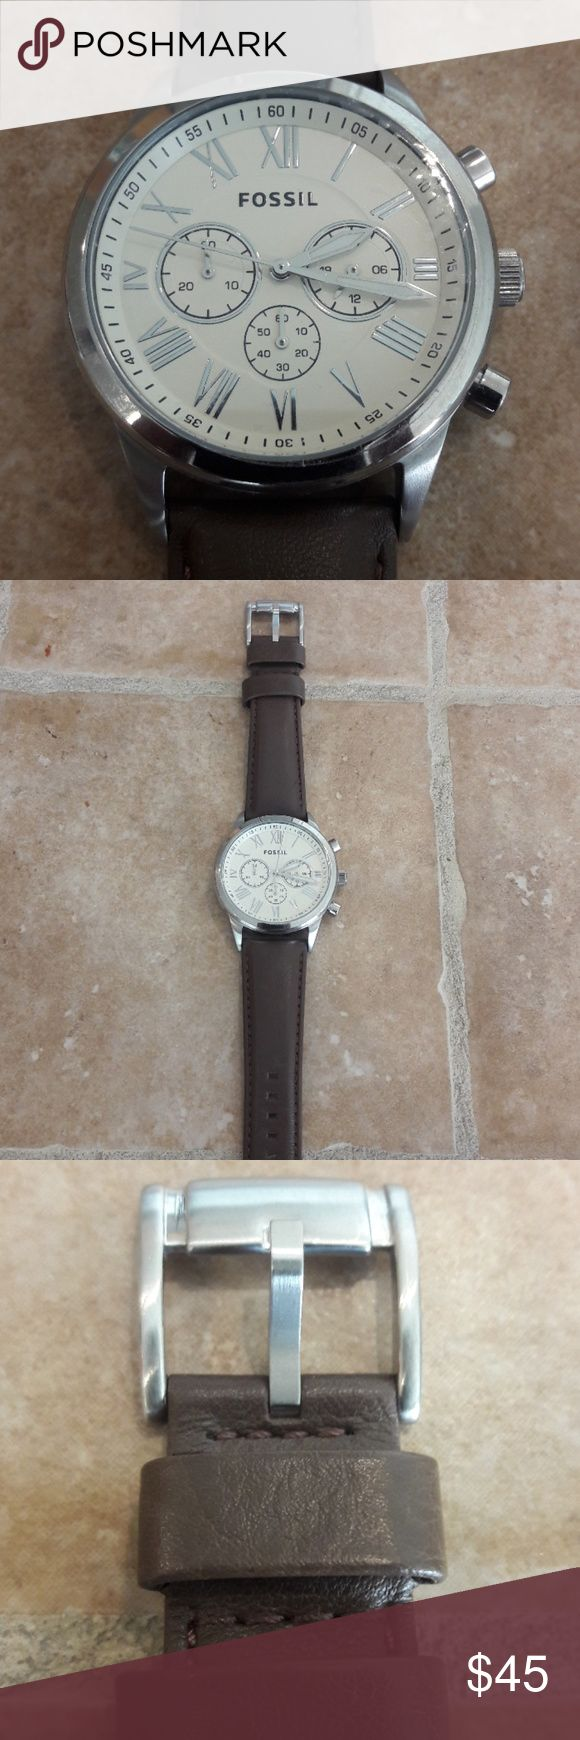 Fossil Chronograph Watch Never Worn, Genuine Leather Fossil Accessories Watches